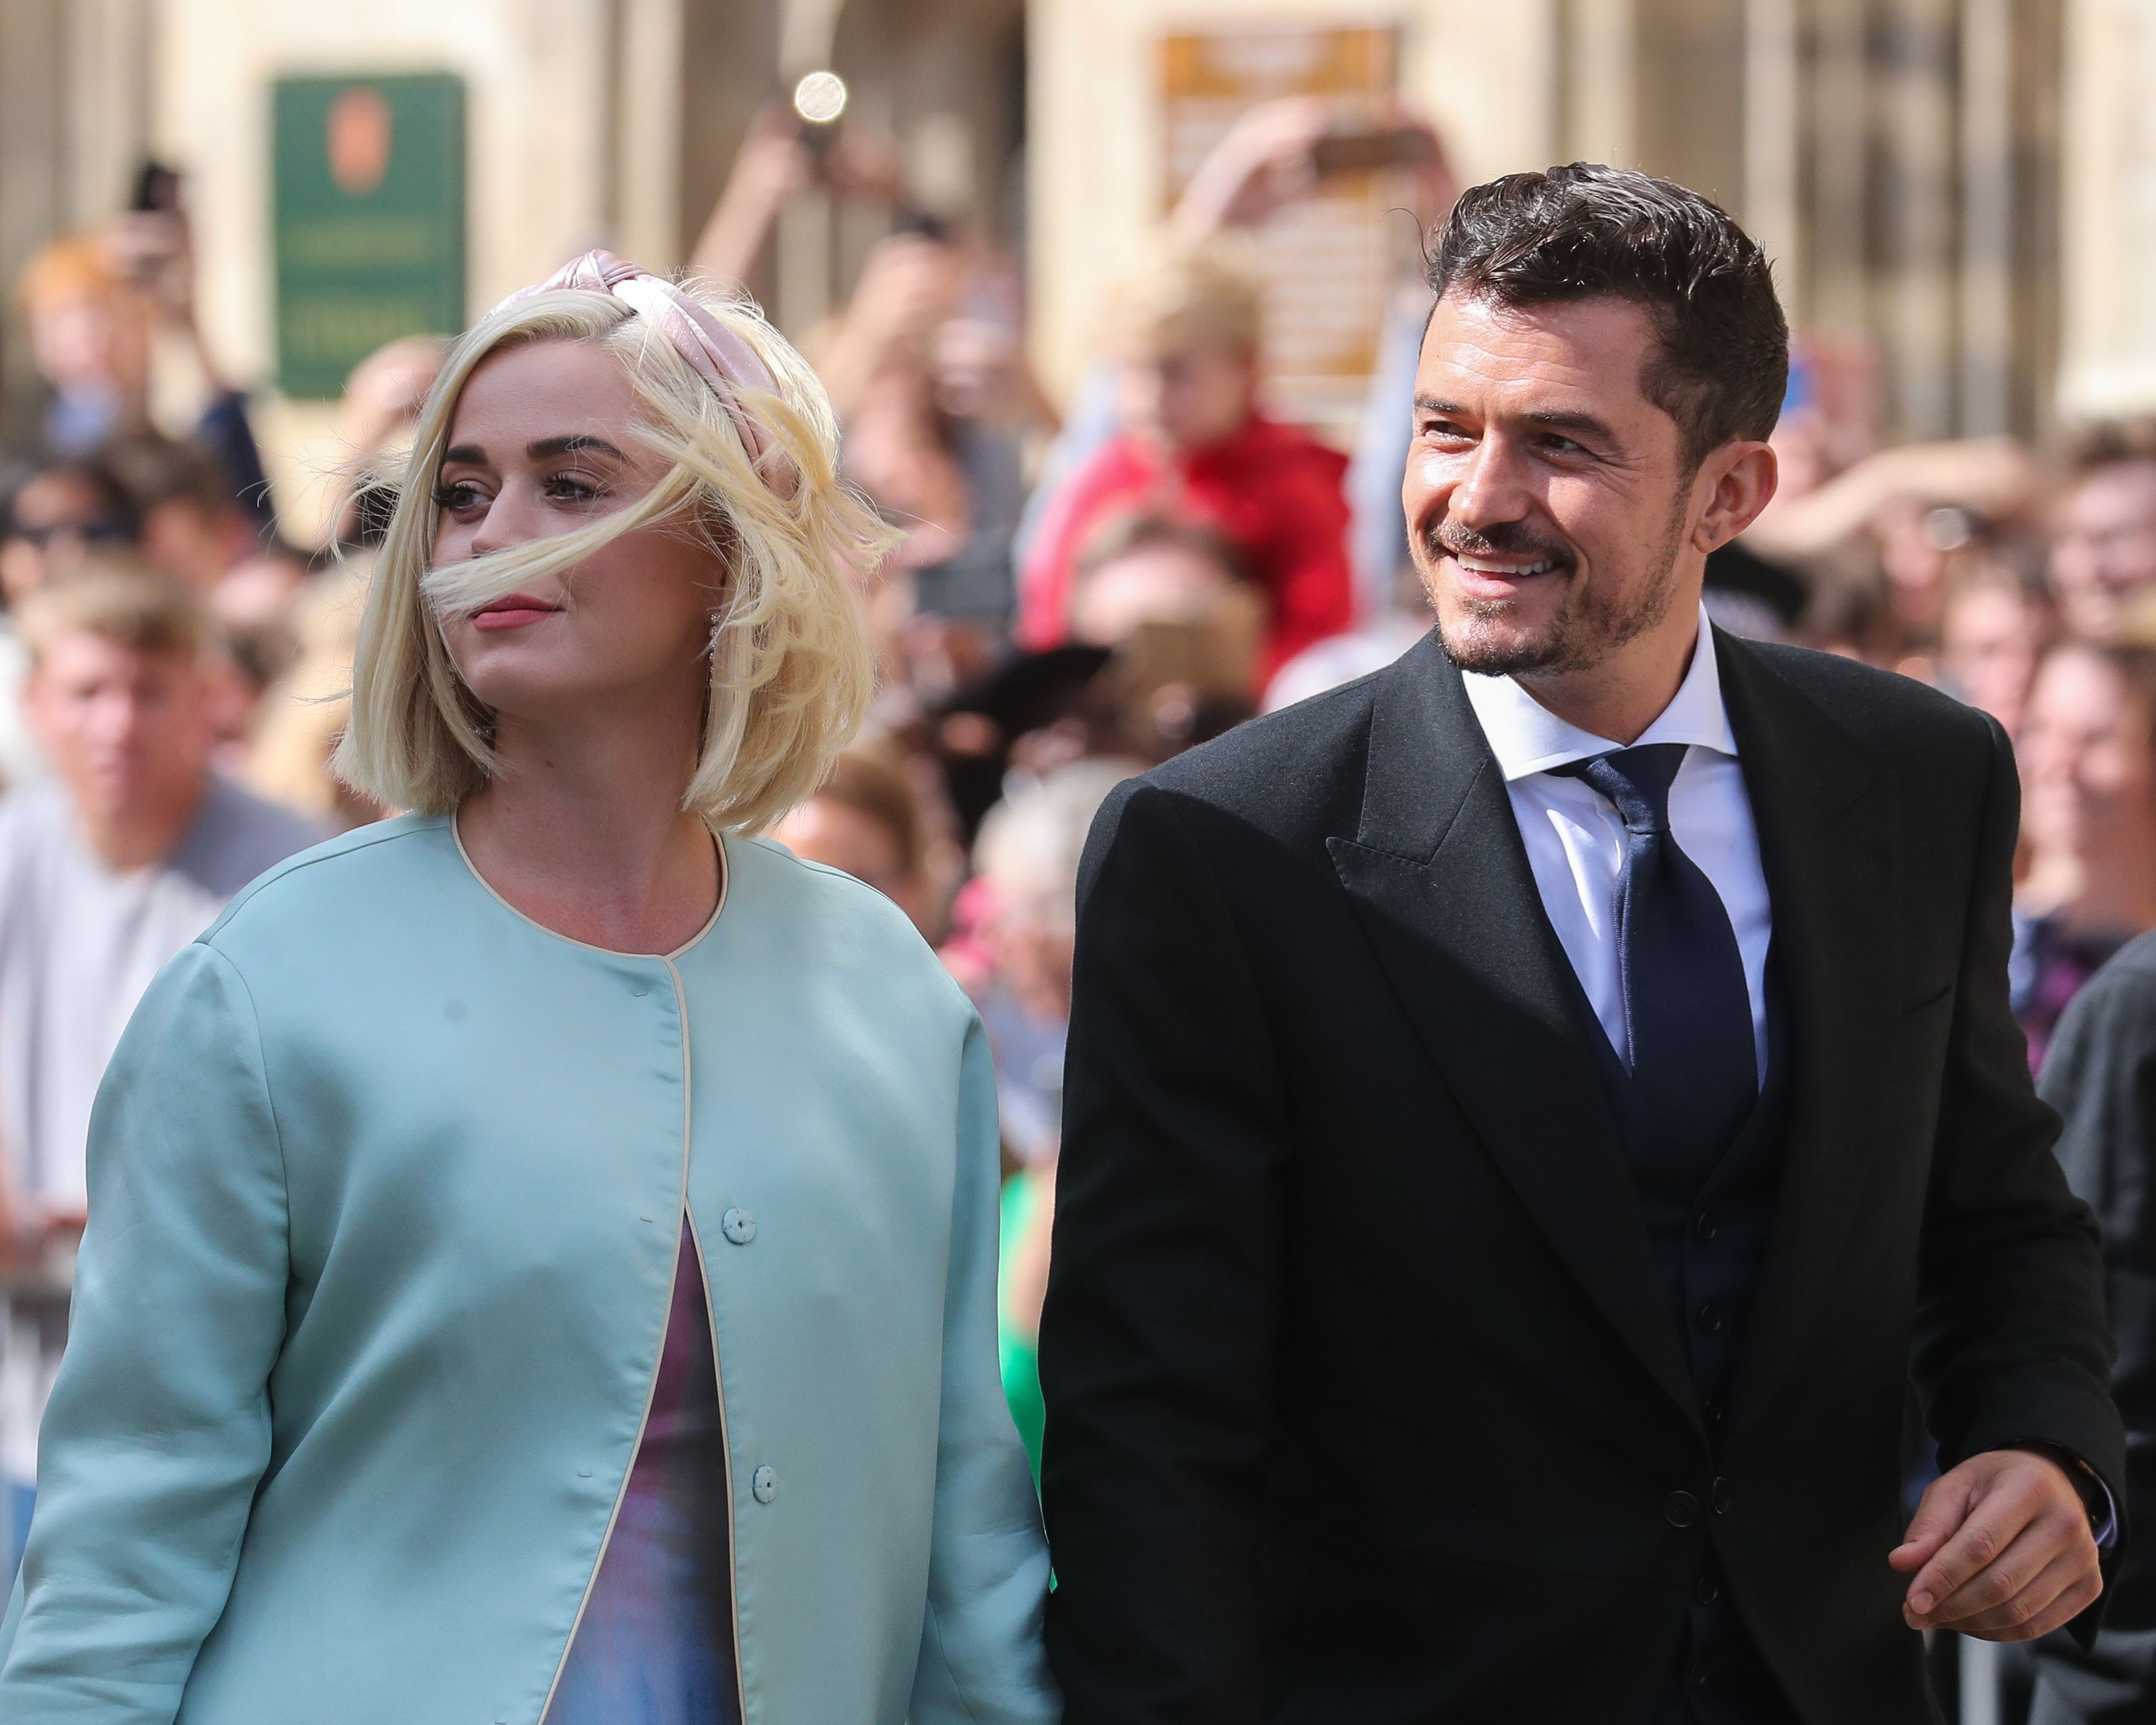 Katy Perry and Orlando Bloom seen at the wedding of Ellie Goulding and Caspar Jopling at York Minster Cathedral on August 31, 2019 in York, England. | Source: Getty Images